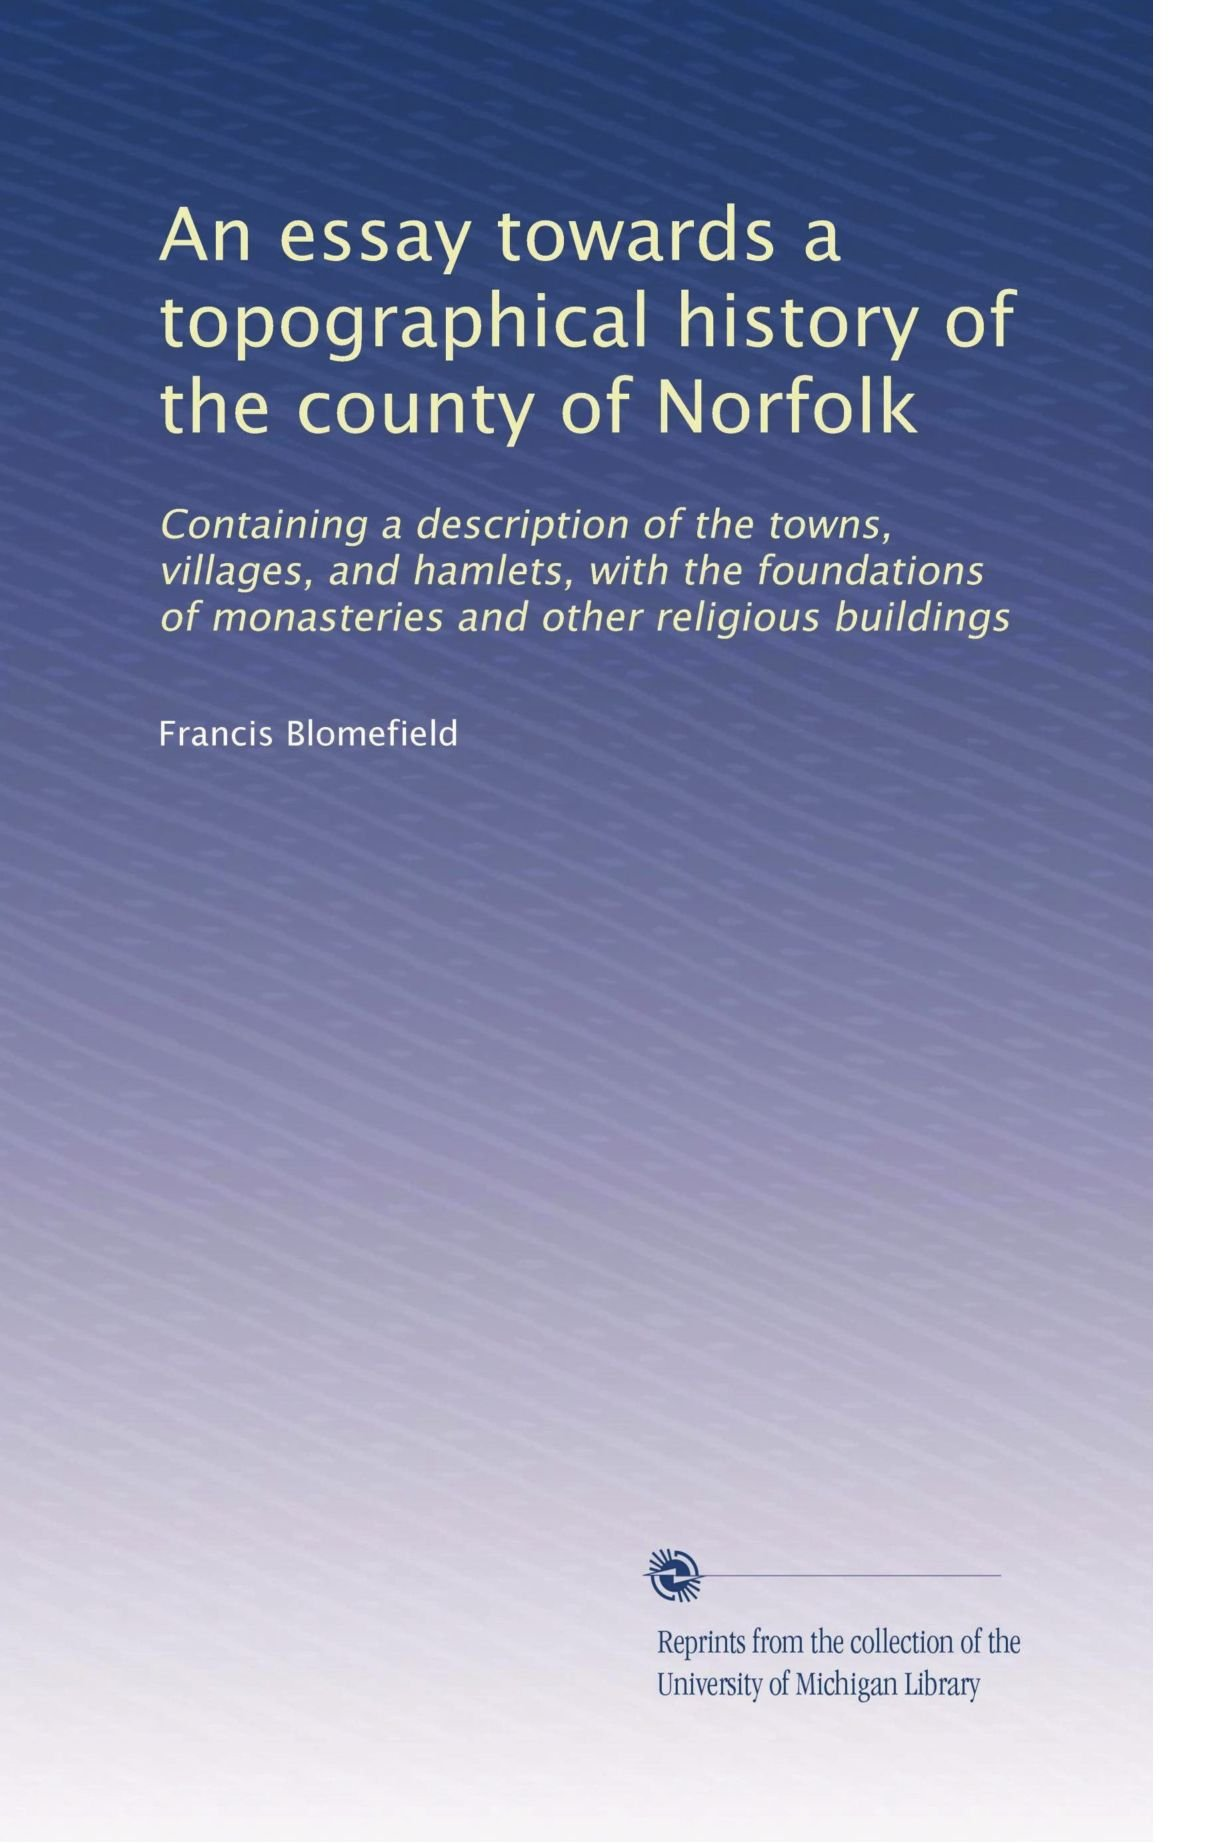 An Essay Towards A Topographical History Of The County Of Norfolk  An Essay Towards A Topographical History Of The County Of Norfolk  Containing A Description Of The Towns Villages And Hamlets With The  Foundations   Causes Of The English Civil War Essay also High School Personal Statement Sample Essays  Science And Literature Essay